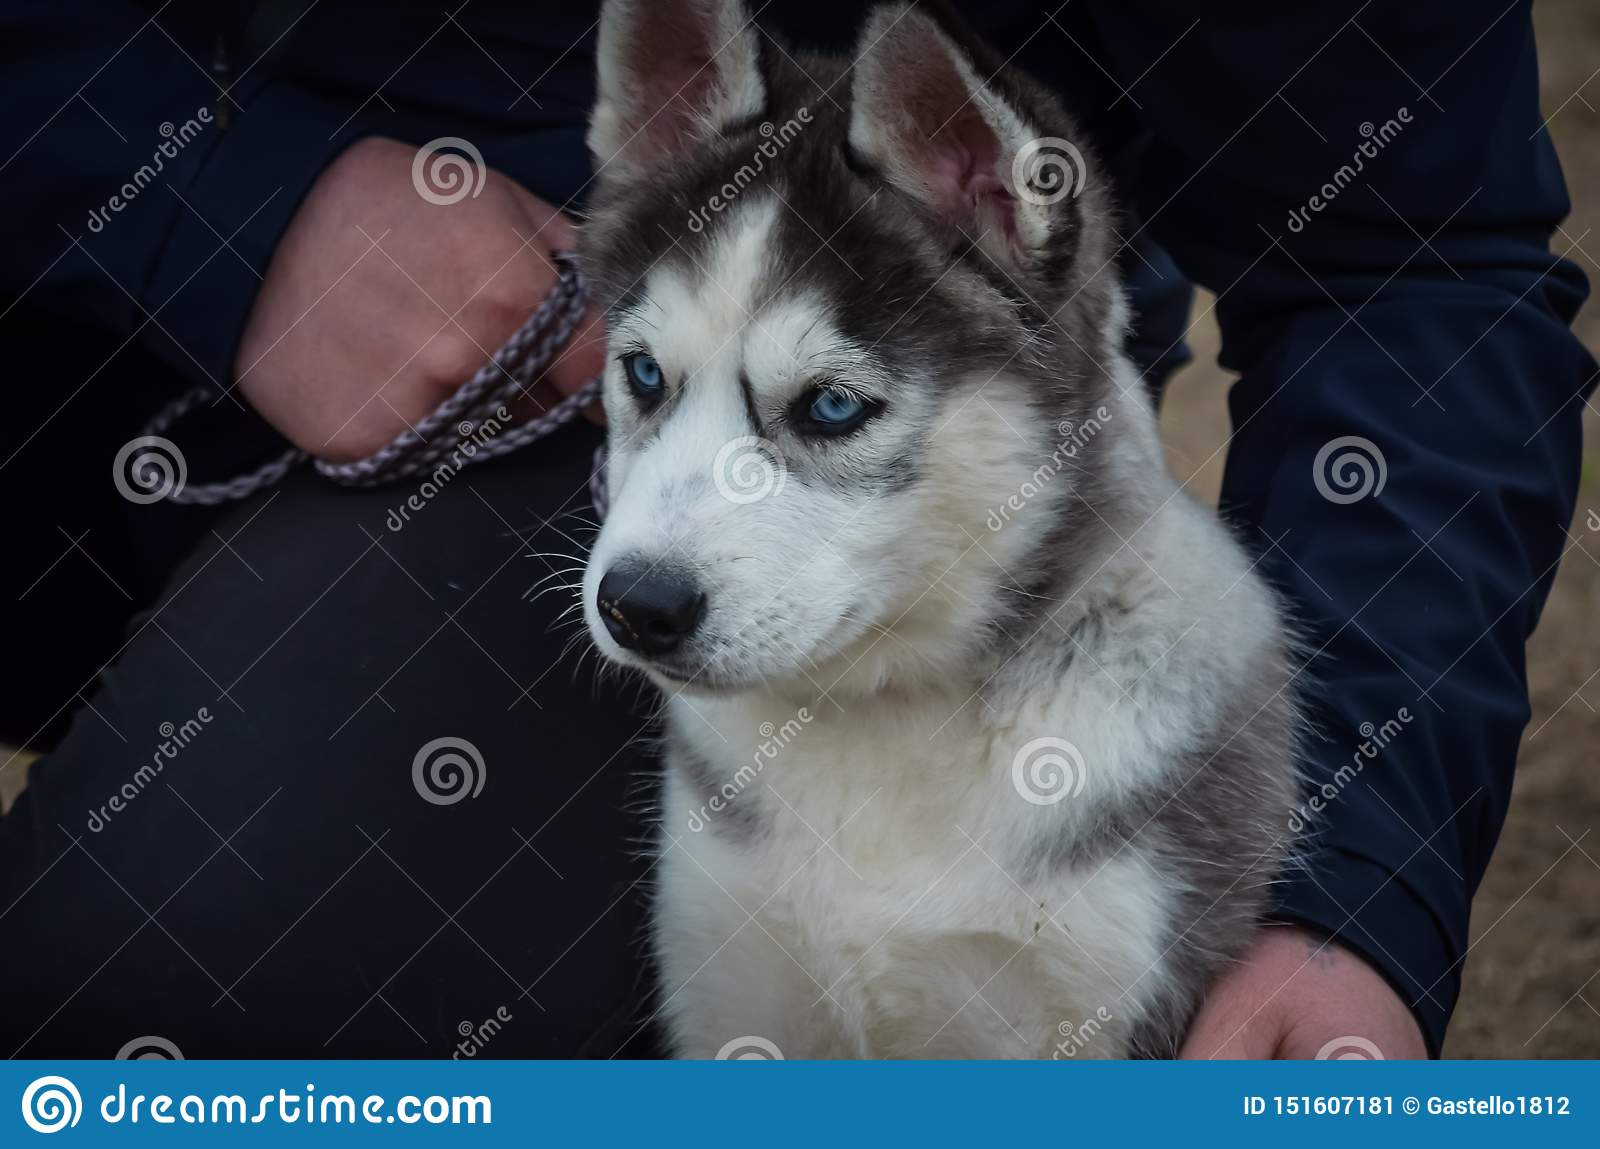 A Cute Husky Puppy With Blue Eyes Sits Next To The Master S Leg Looking Into The Distance The First Ever Dog Show Stock Image Image Of Breeds Glance 151607181